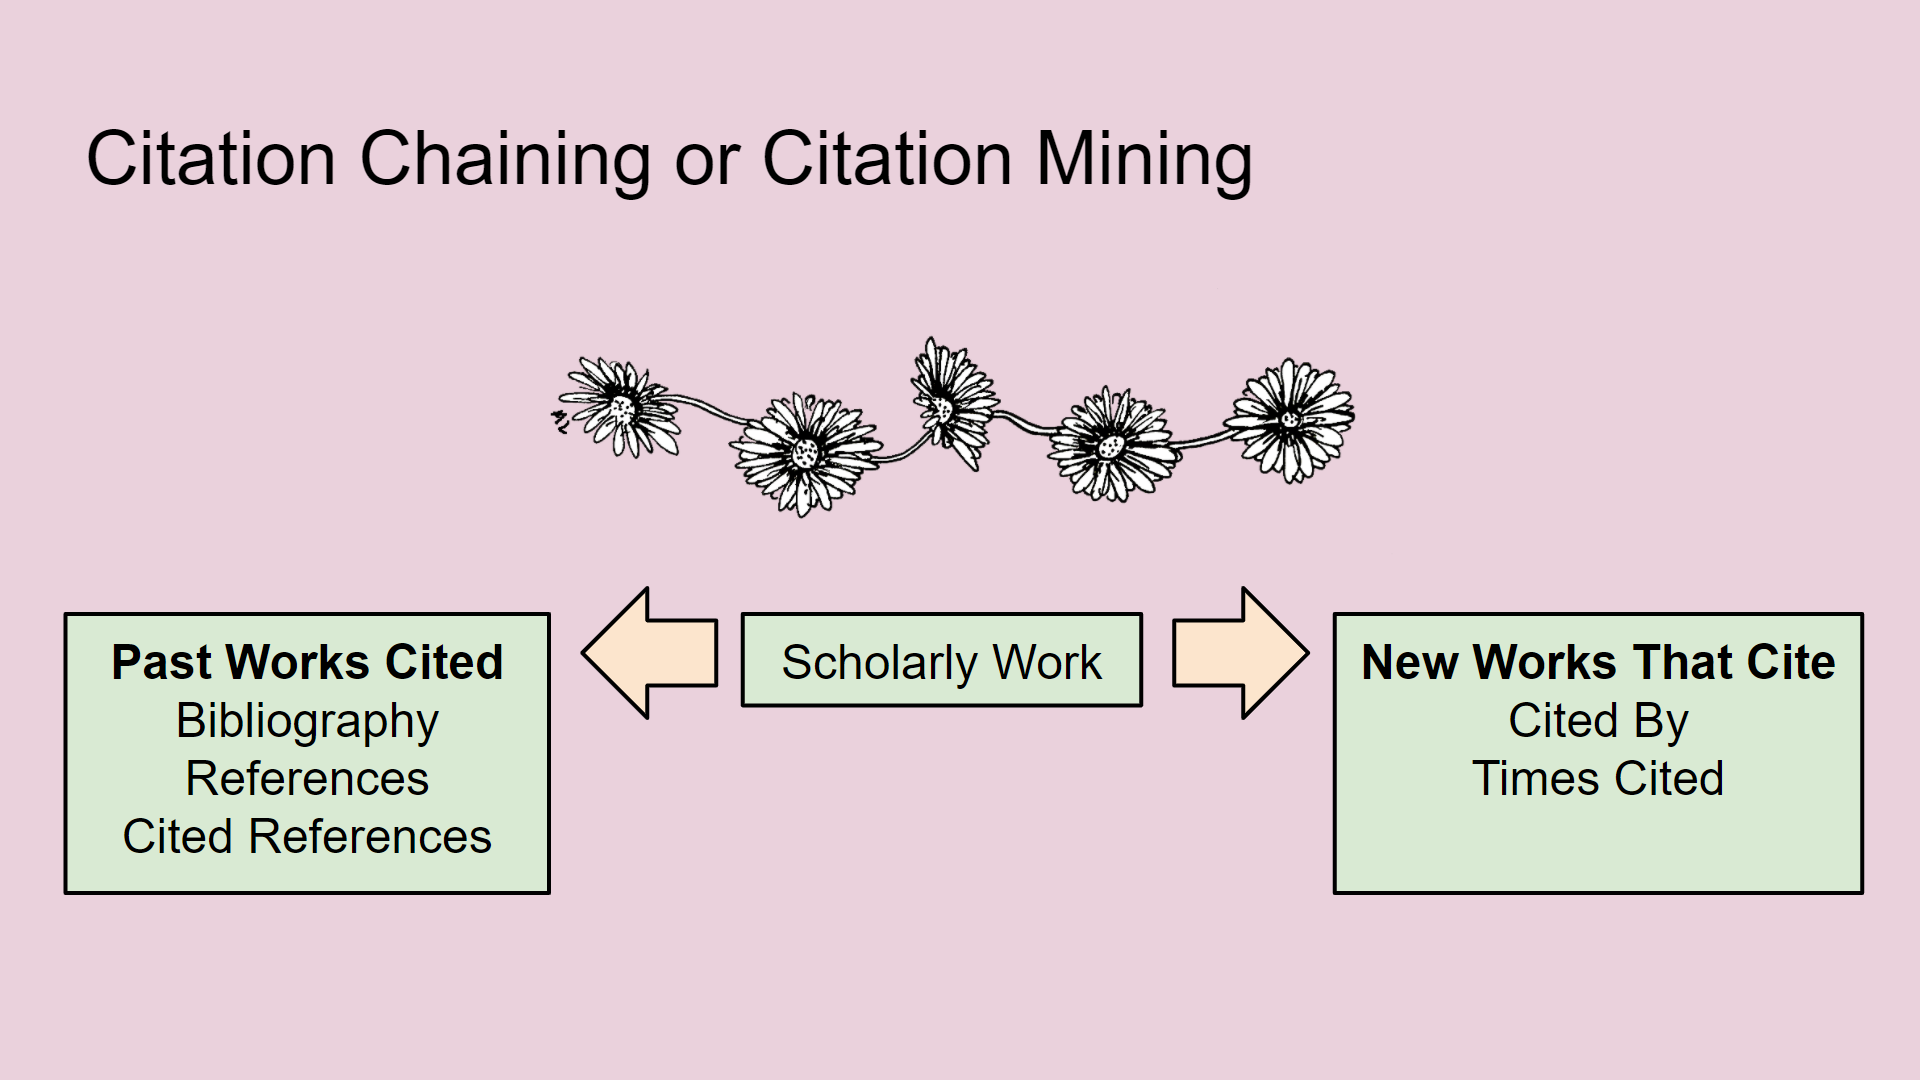 """The words """"Citation Chaining or Citation Mining"""" followed by a row of flowers linked together. The center of the image contains the words """"scholarly work"""" with an arrow pointing to the works """"past works cited: bibliography, references, cited references."""" There is a second arrow from the center pointing to the words """"new works that cite: cited by, times cited"""""""